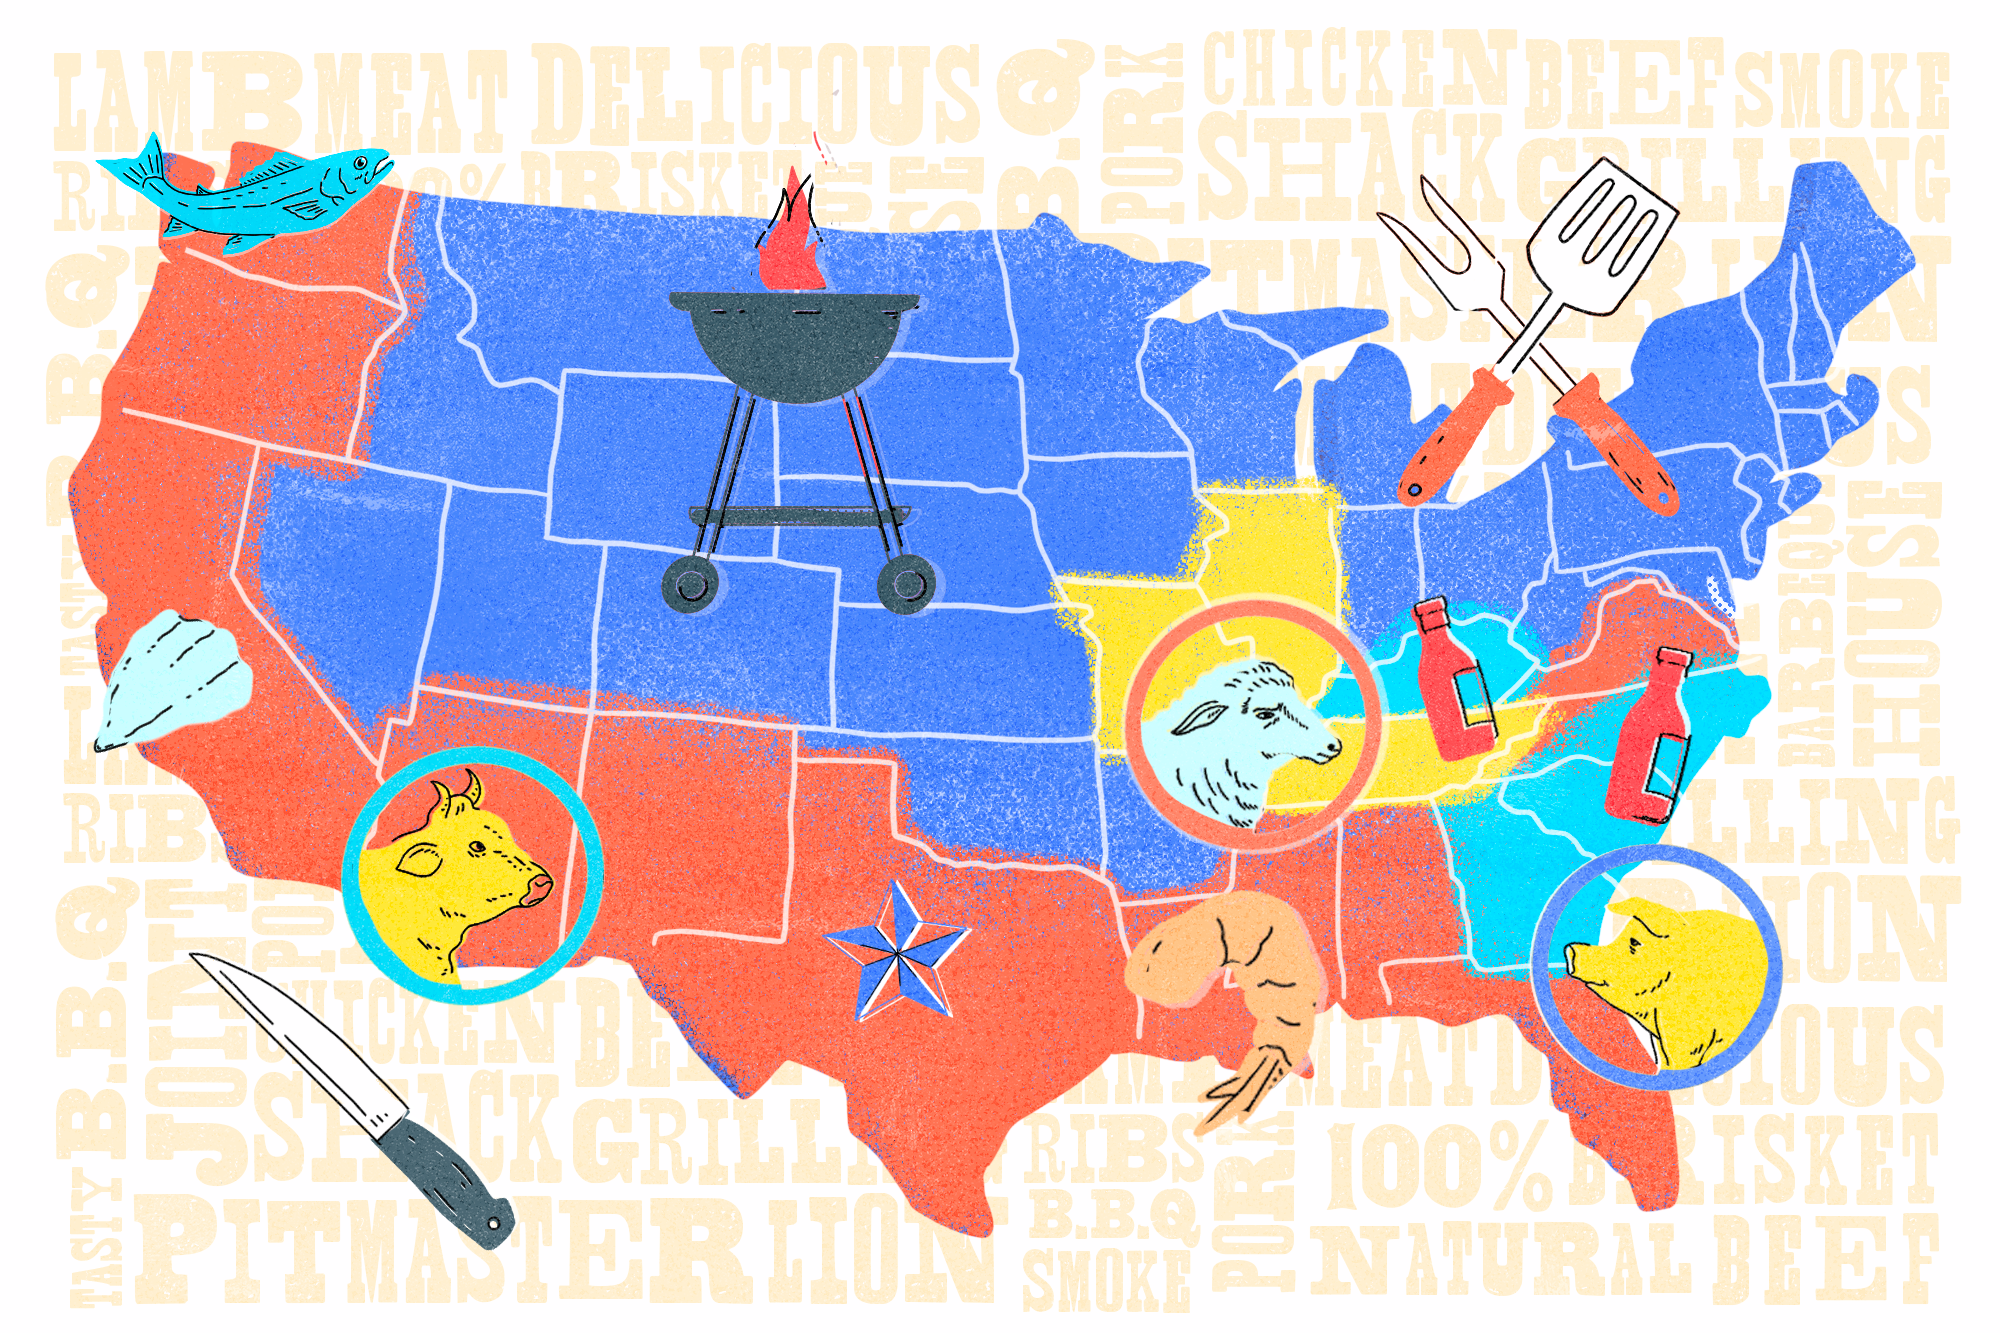 map of different BBQ styles in the United States